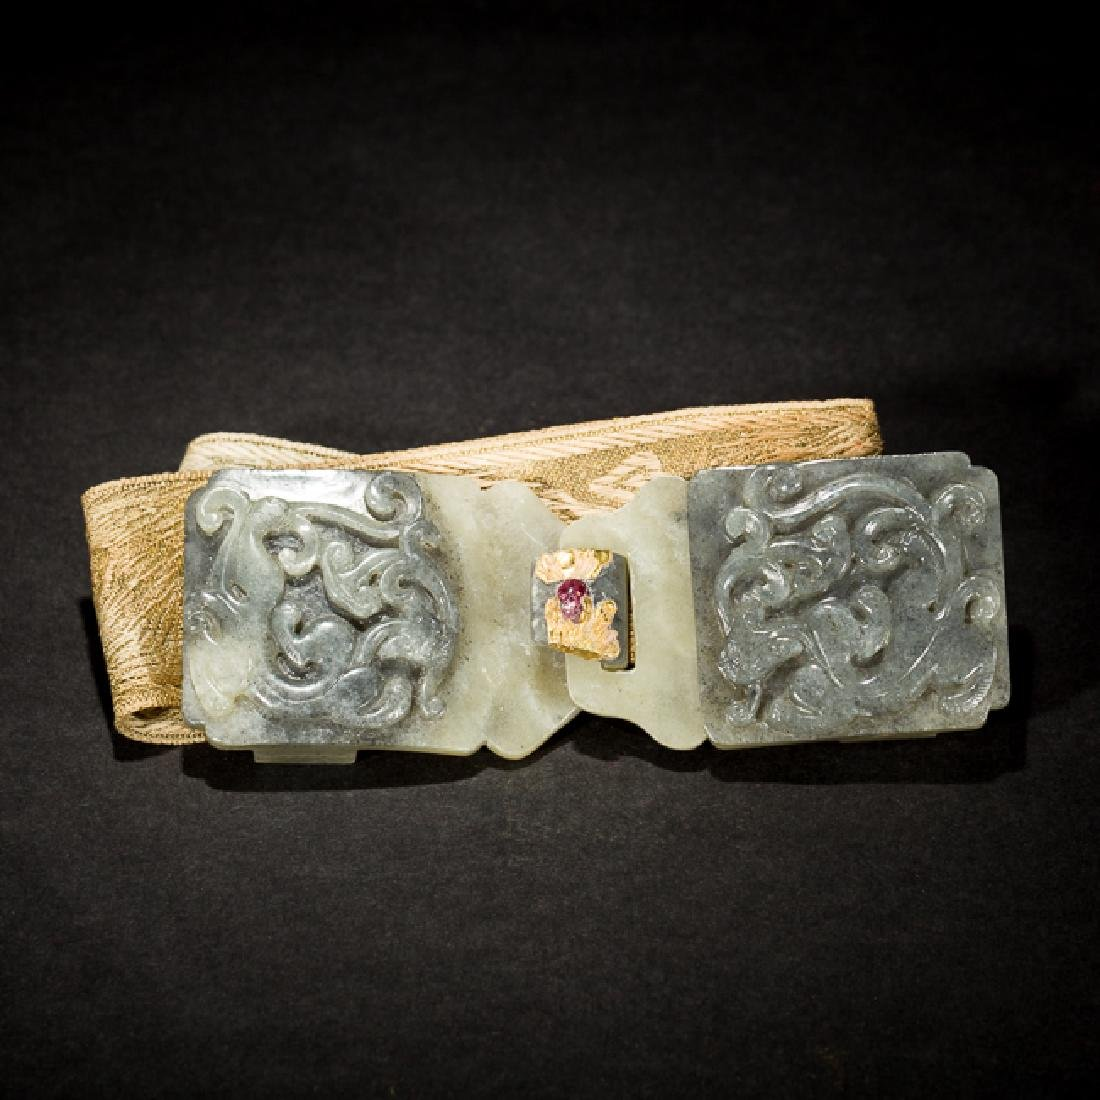 Chinese Antique Jade Garment Hook,19TH